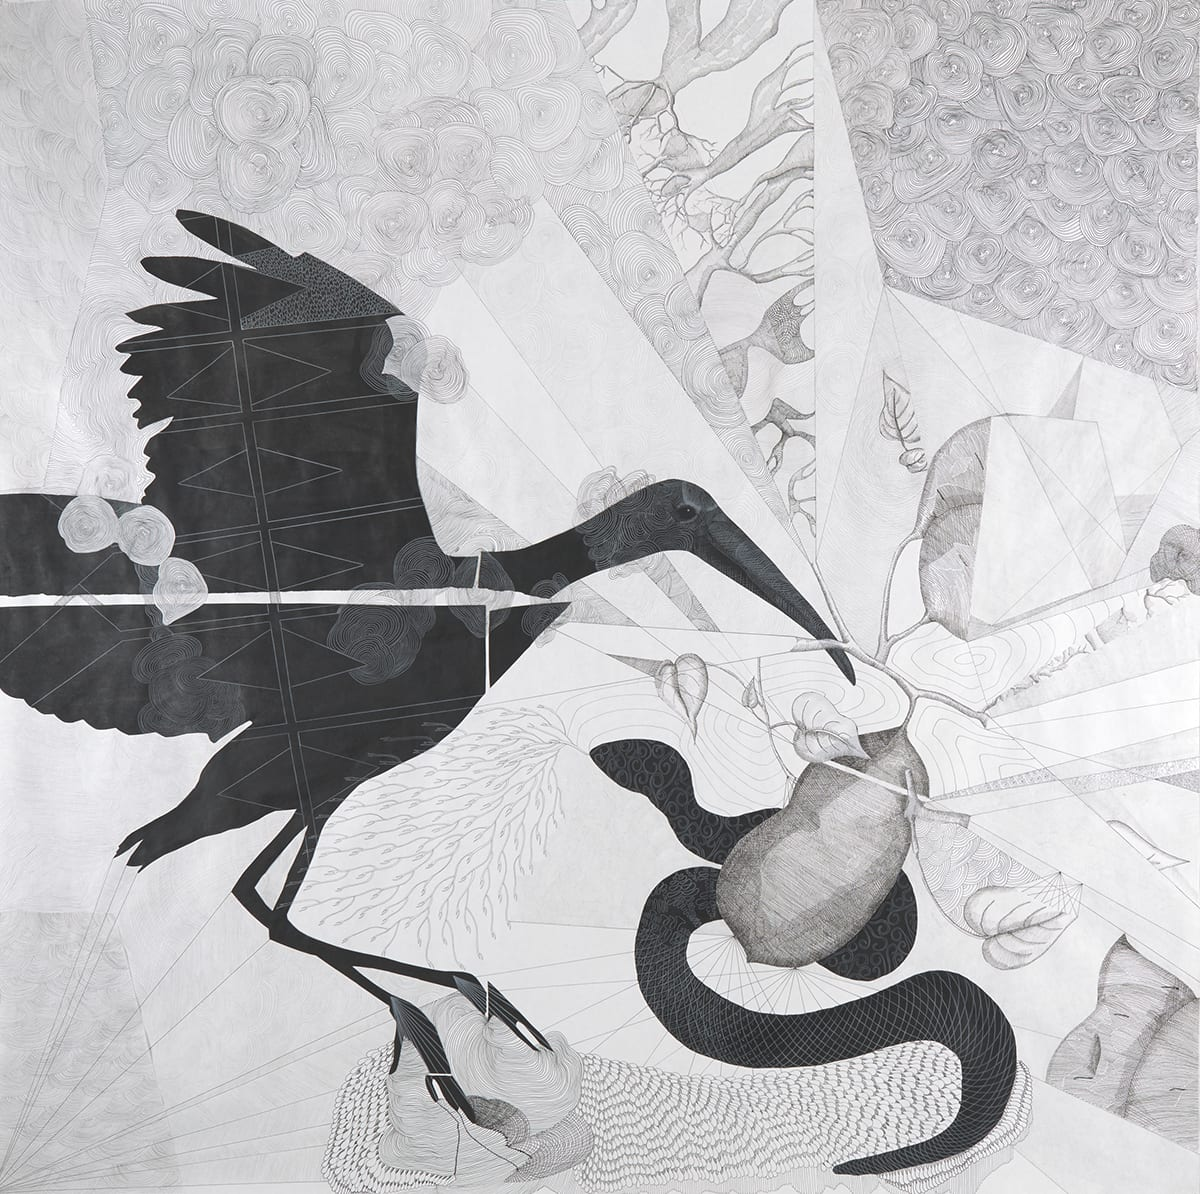 Promise and Purpose, the Ancestor's Dream, Kirsten Furlong, 60 x 60 inches, collage, ink, graphite and colored pencil on paper. A square black, white and gray work depicting a wood stork with outstretched wings and a long bill, a patterned snake and large sweet potato. The black wood stork, shown from the side and facing right, occupies the left half of the work with its wings and legs extended as if in the act of landing. It has a small smooth head with a long bill and feet and its surface is pattern in geometric and organic shapes. The stork's form is segmented into four pieces that have been collaged together. To the lower right is a large sweet potato sprouting leaves and other partially obscured sweet potatoes. Underneath the potato is the black snake with curlicue patterned head and scaly body. The background is divided into areas of various patterns rendered in soft gray within sections that radiate from different points on the work.